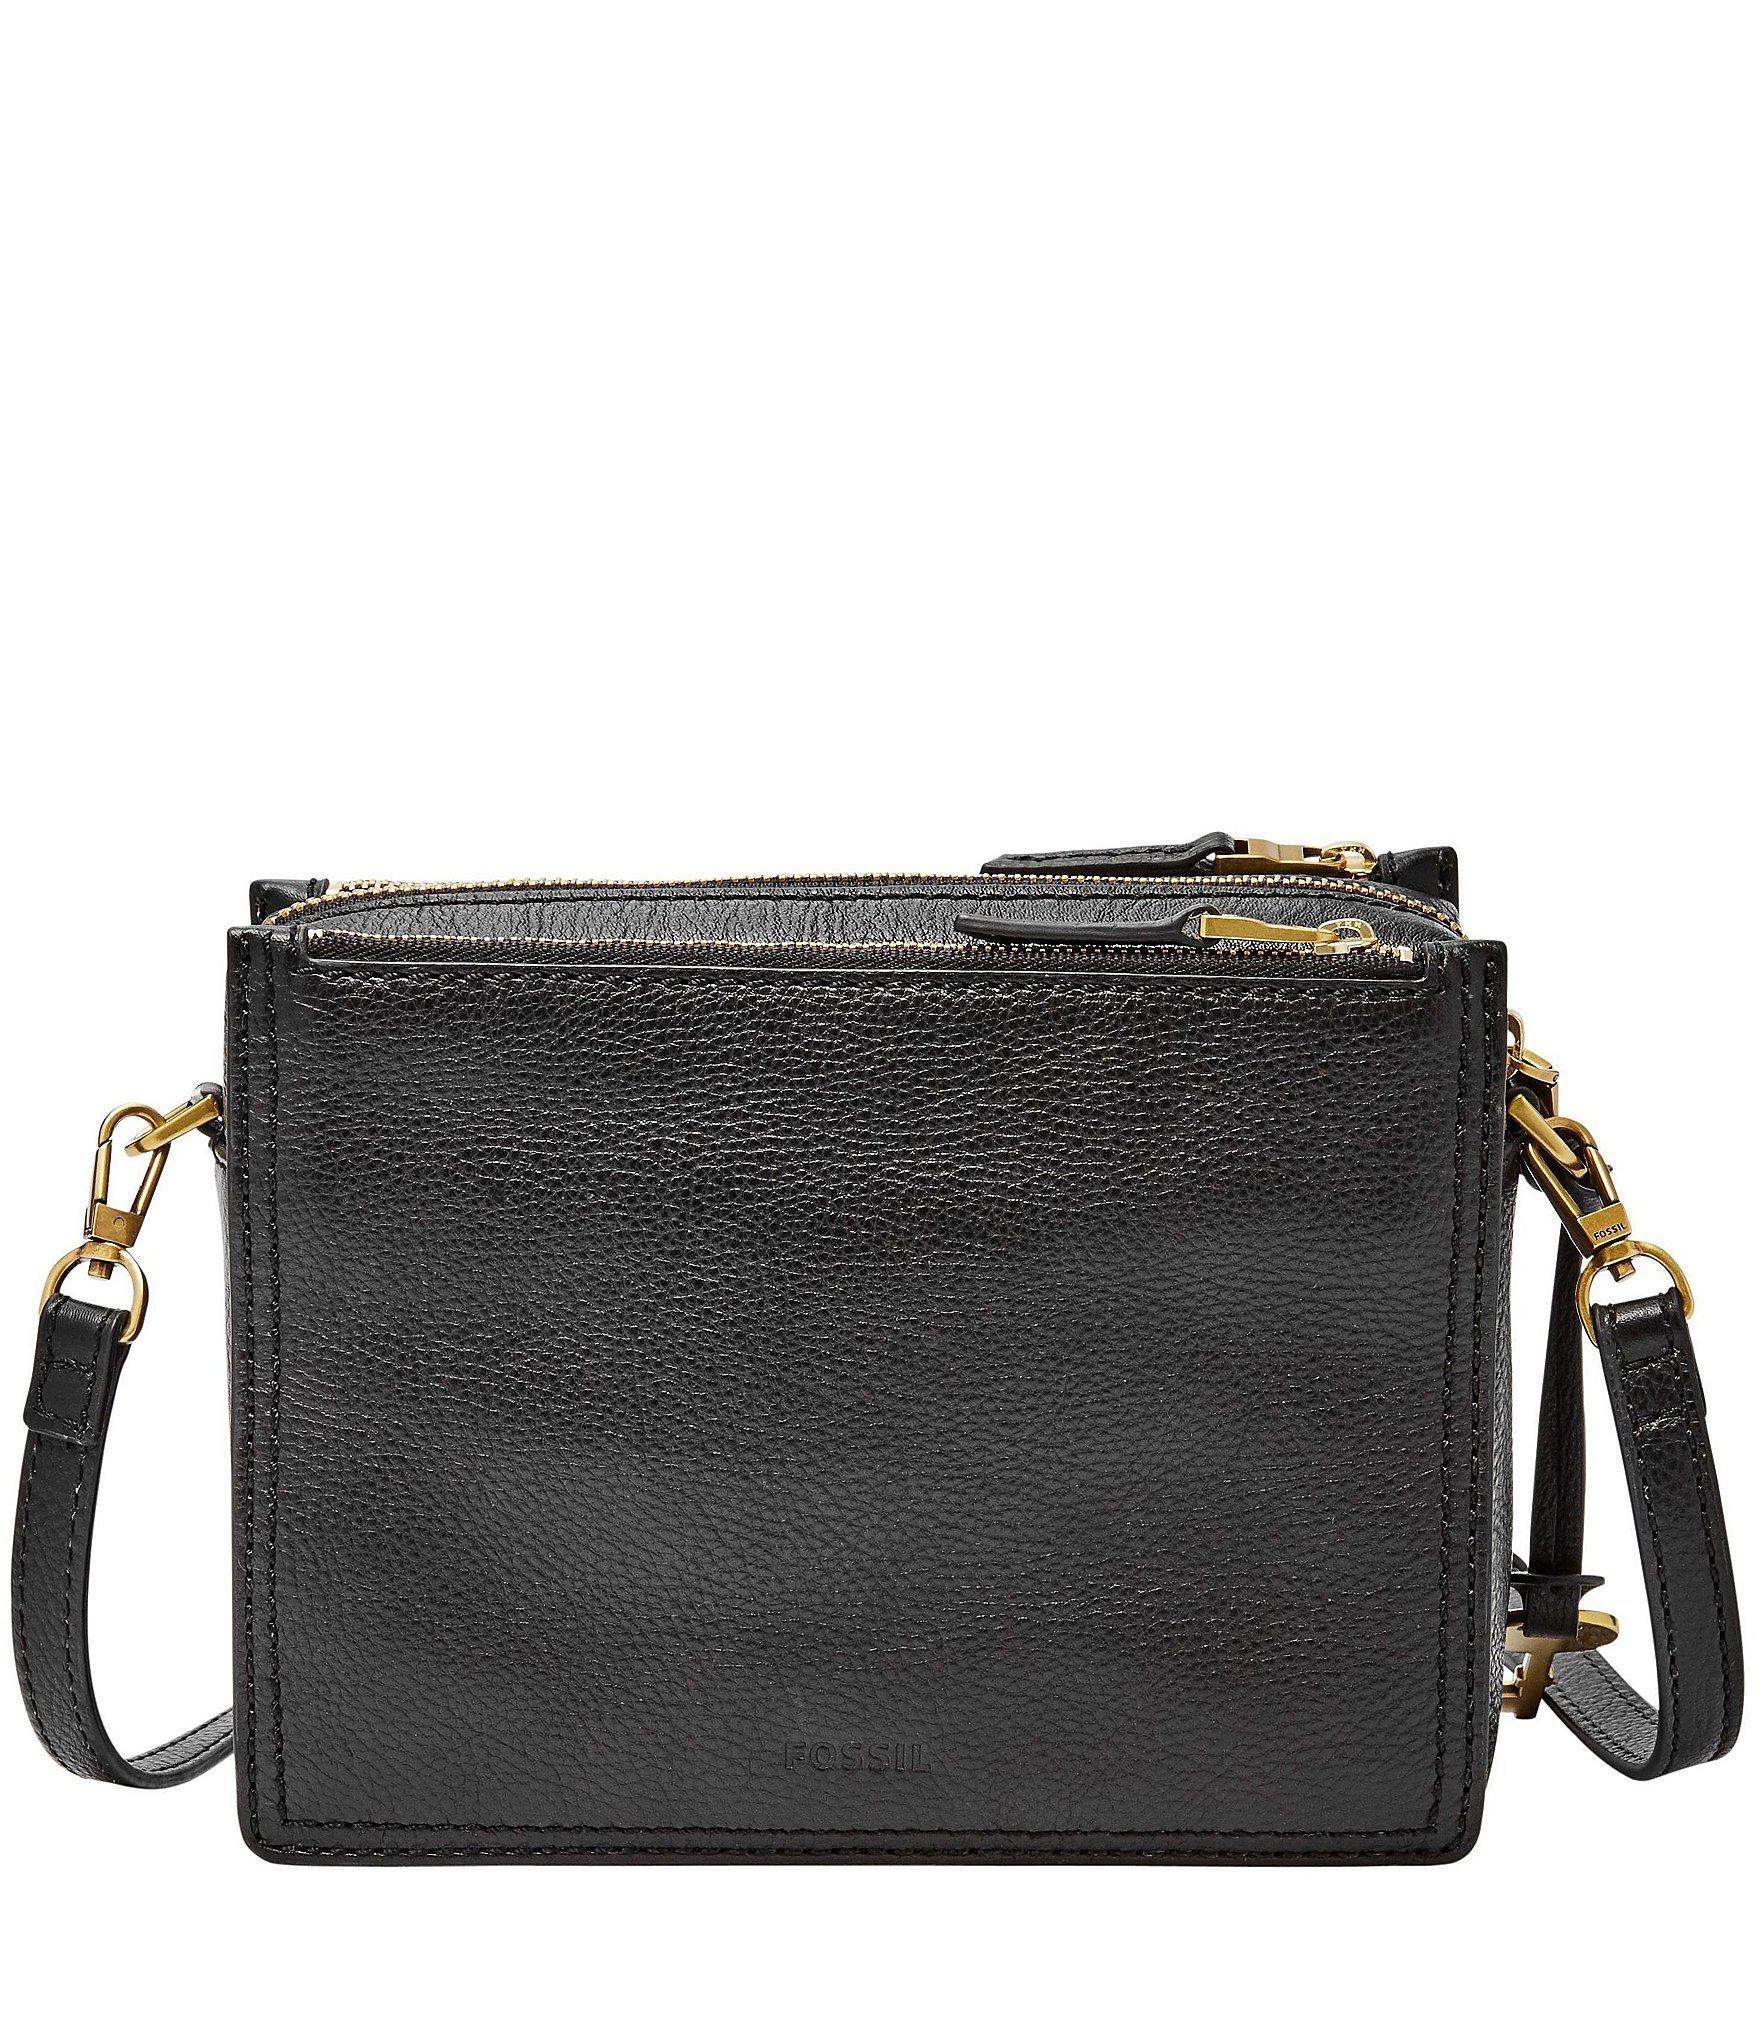 b539332a0eaa9 Fossil - Black Campbell Leather Cross-body Bag - Lyst. View fullscreen